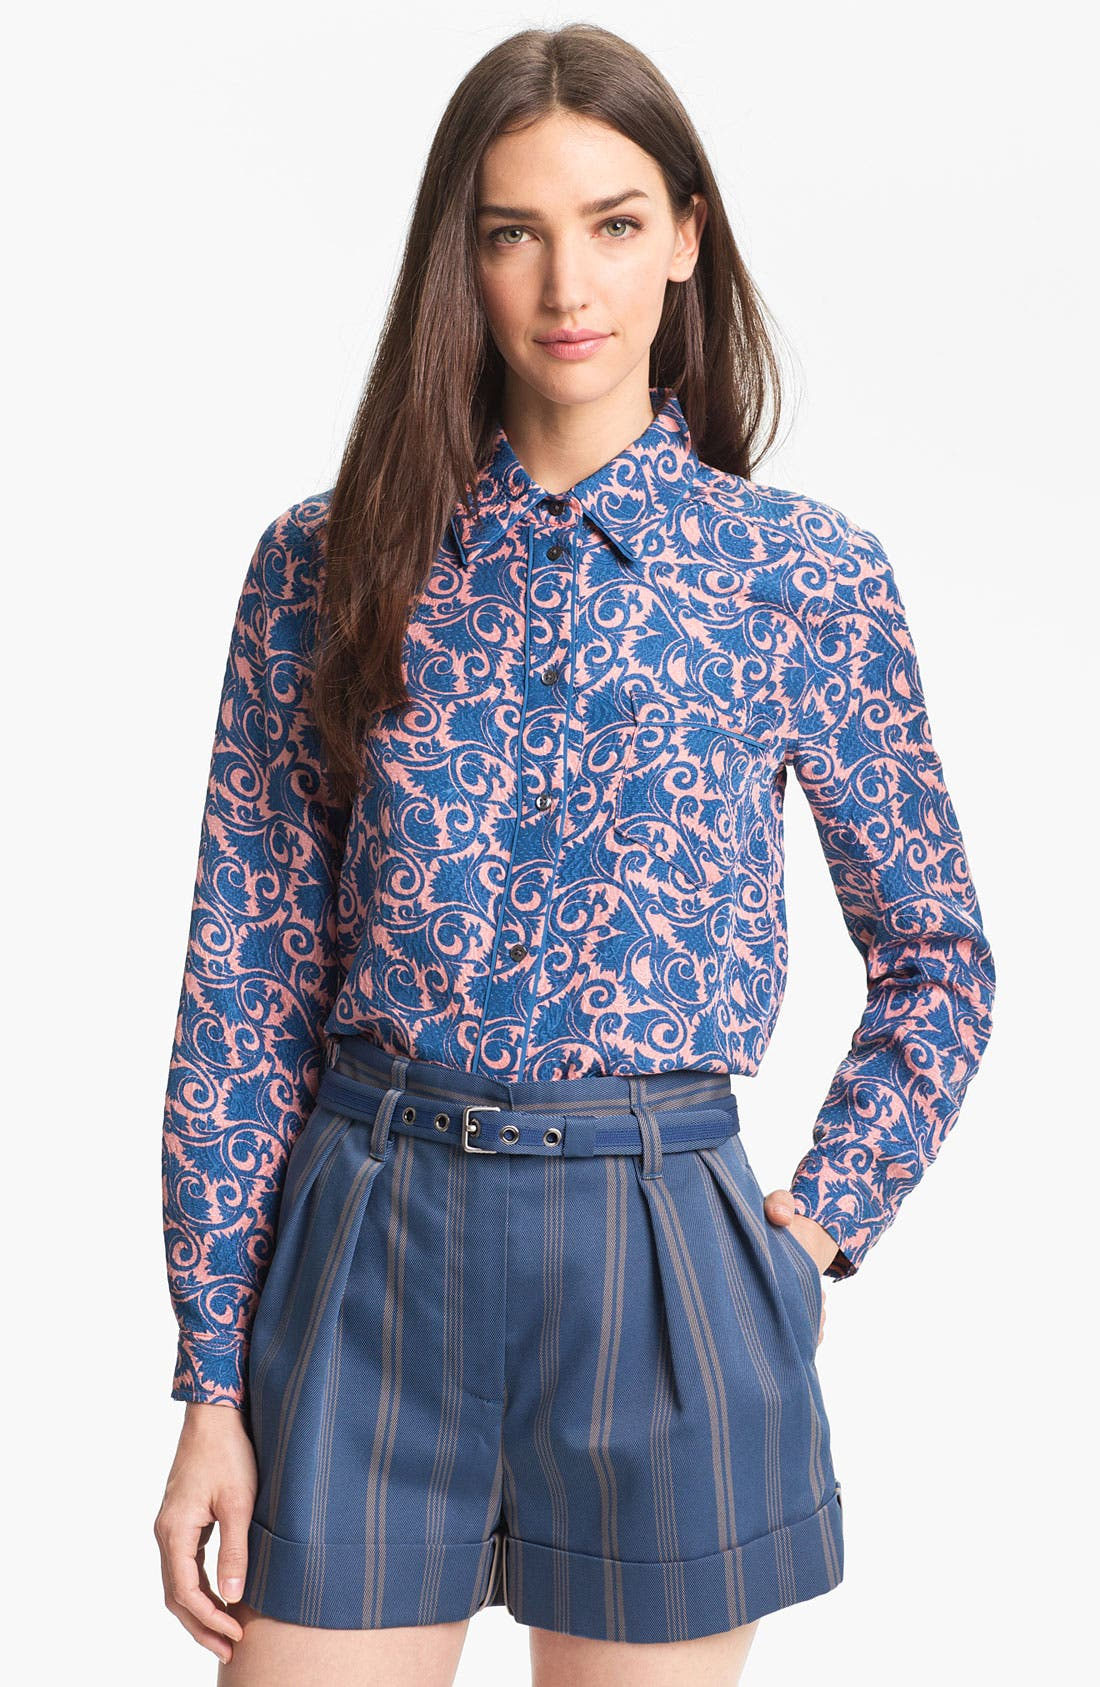 Alternate Image 1 Selected - MARC BY MARC JACOBS 'Tootsie Flower' Silk Top